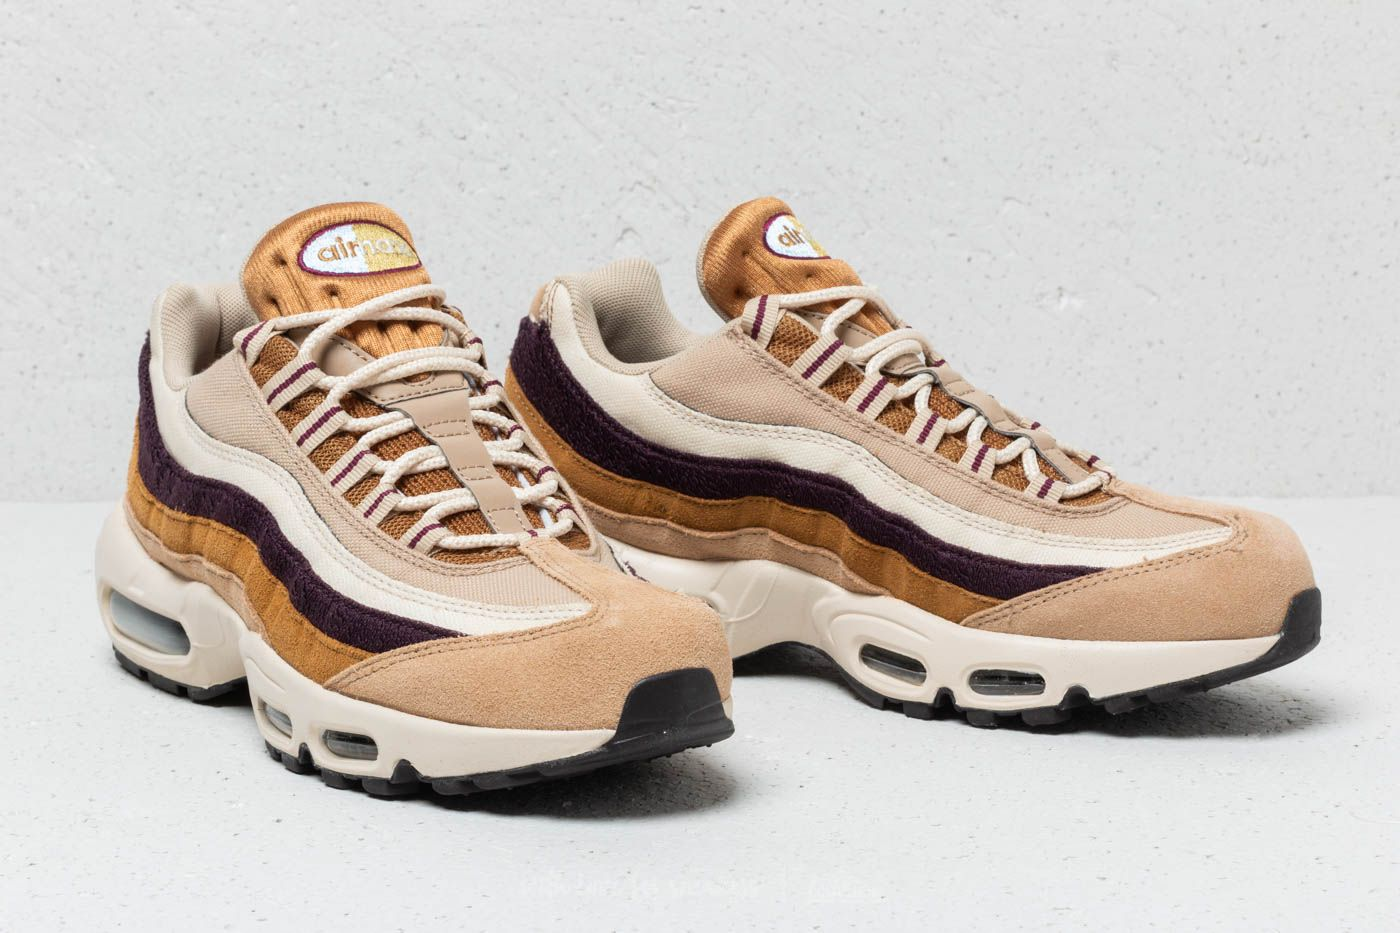 timeless design b5390 f76f6 Nike Air Max 95 Premium Desert/ Royal Tint-Camper Green ...